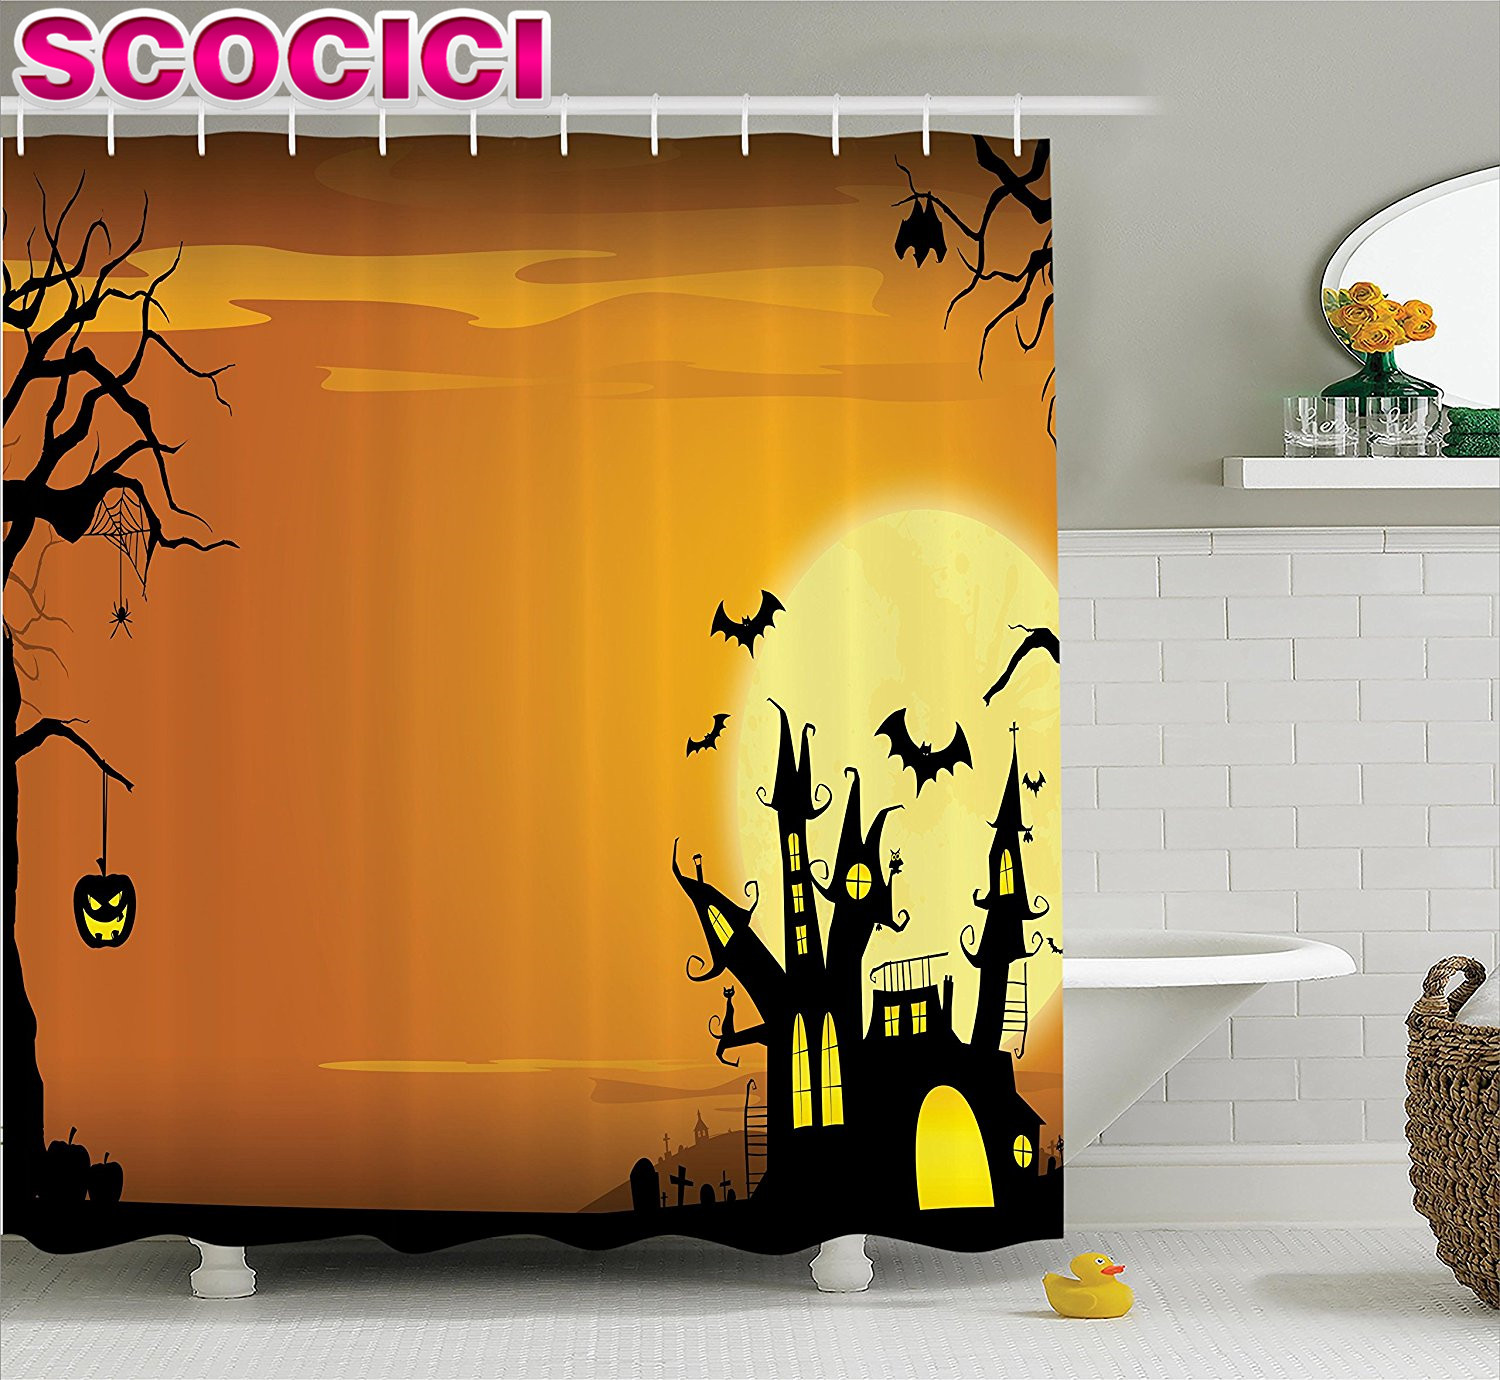 Halloween shower curtain - Halloween Decorations Shower Curtain Set Gothic Haunted House Theme Flying Bats Western Spooky Night Scene With